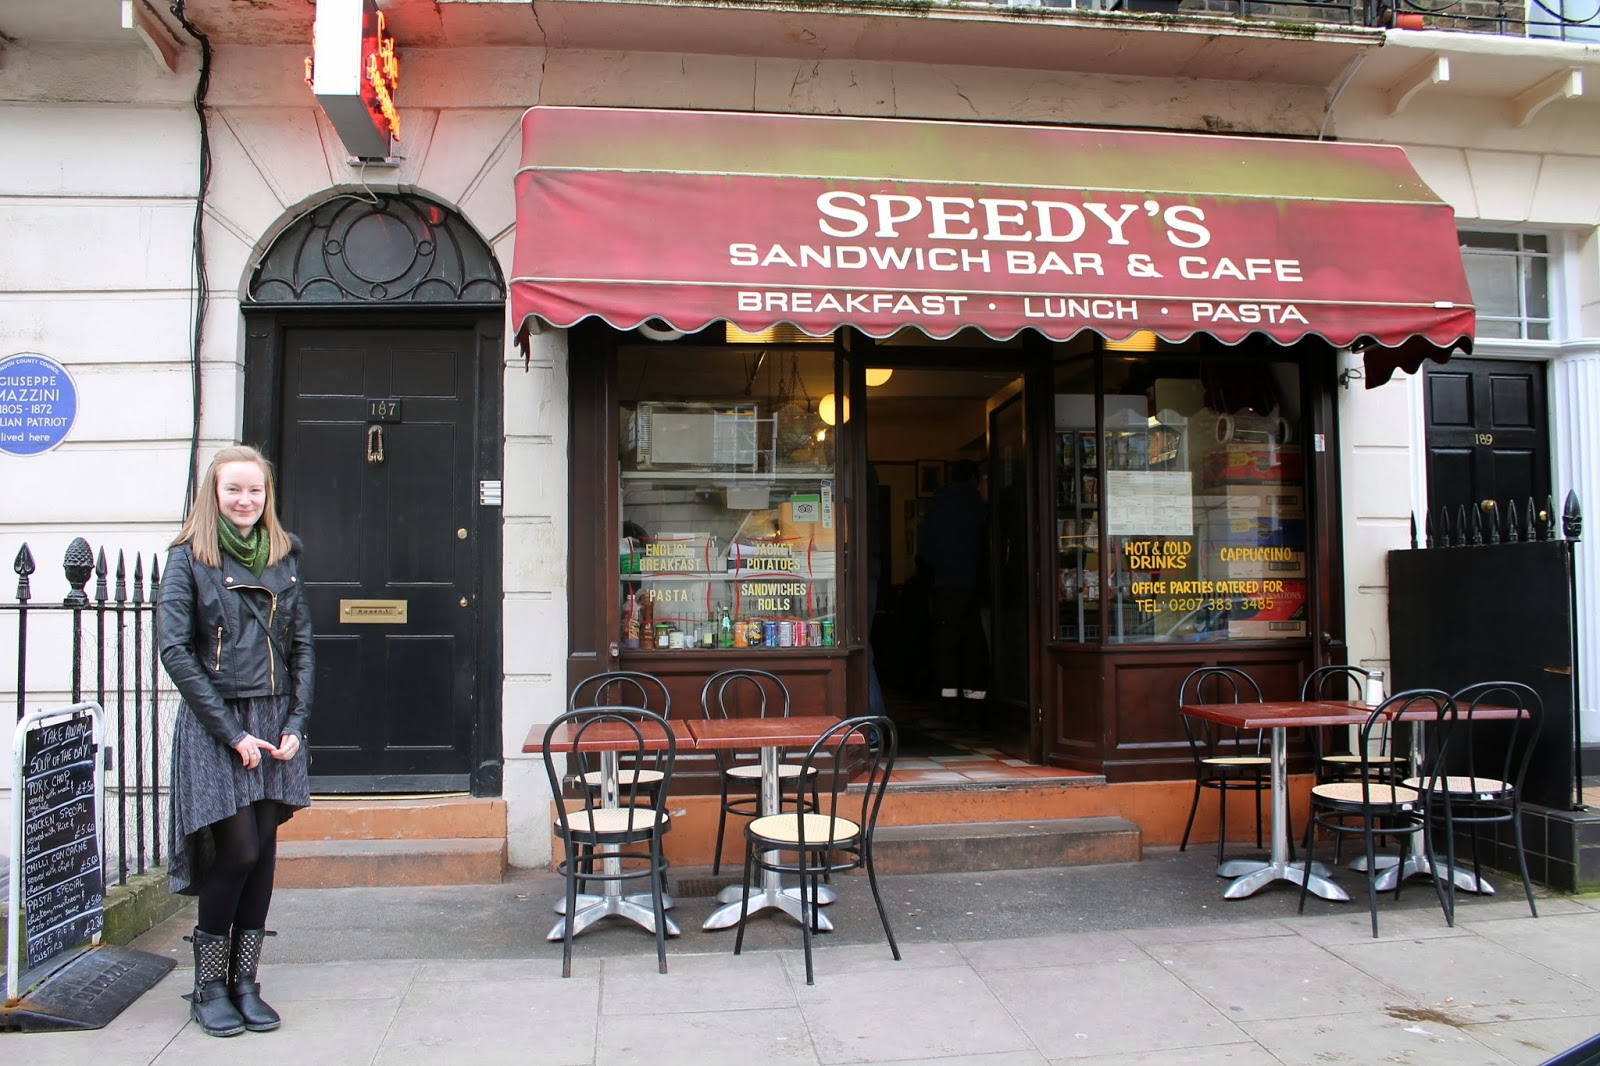 Sherlock Door 221B Baker Street and Speedy's Cafe London